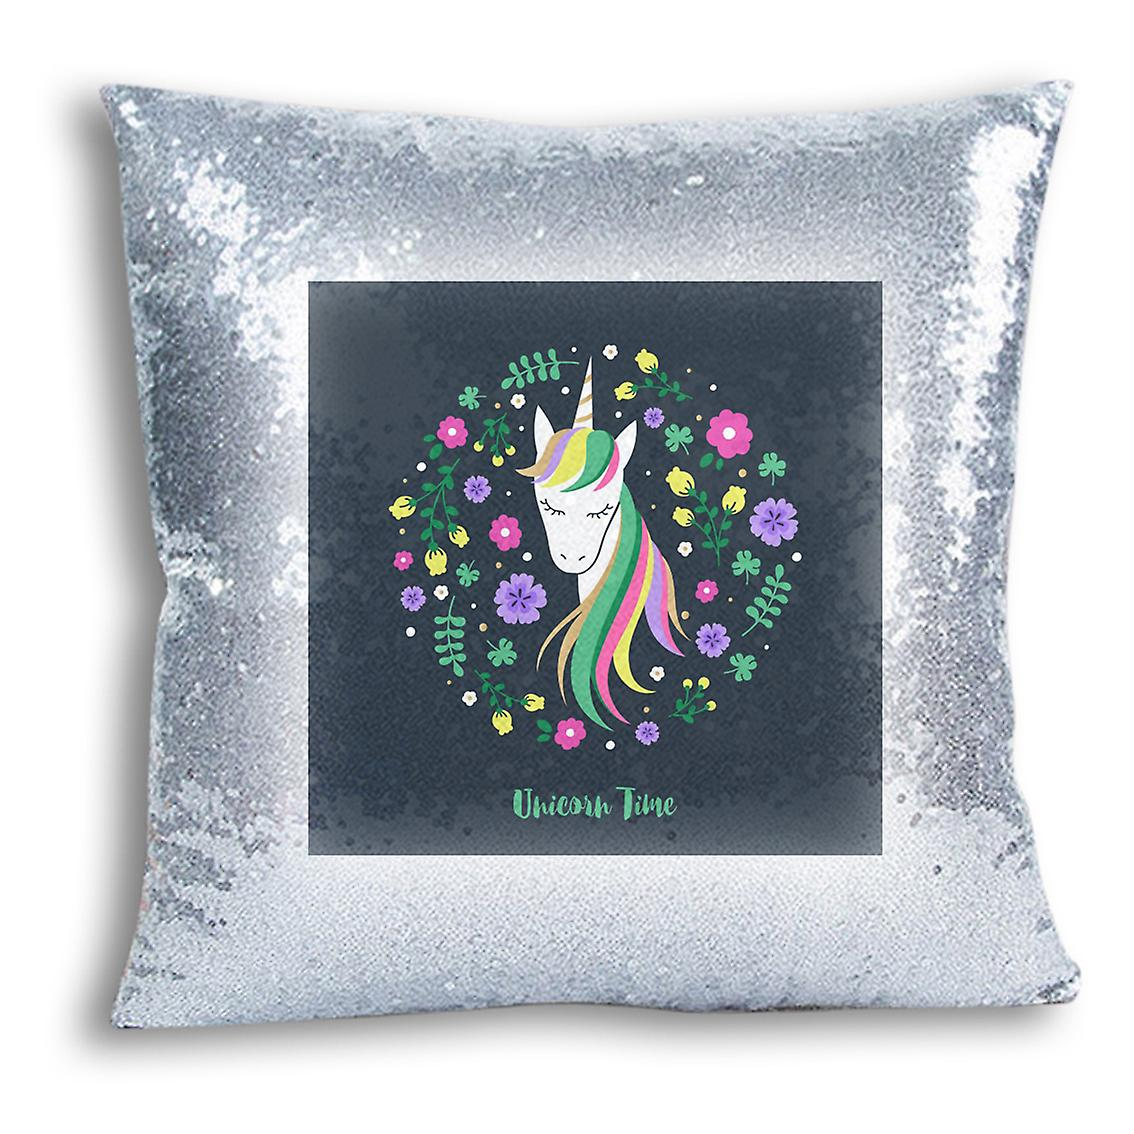 I Decor Cover With Design CushionPillow Home 15 Inserted For Printed tronixsUnicorn Sequin Silver Yfgvb76y